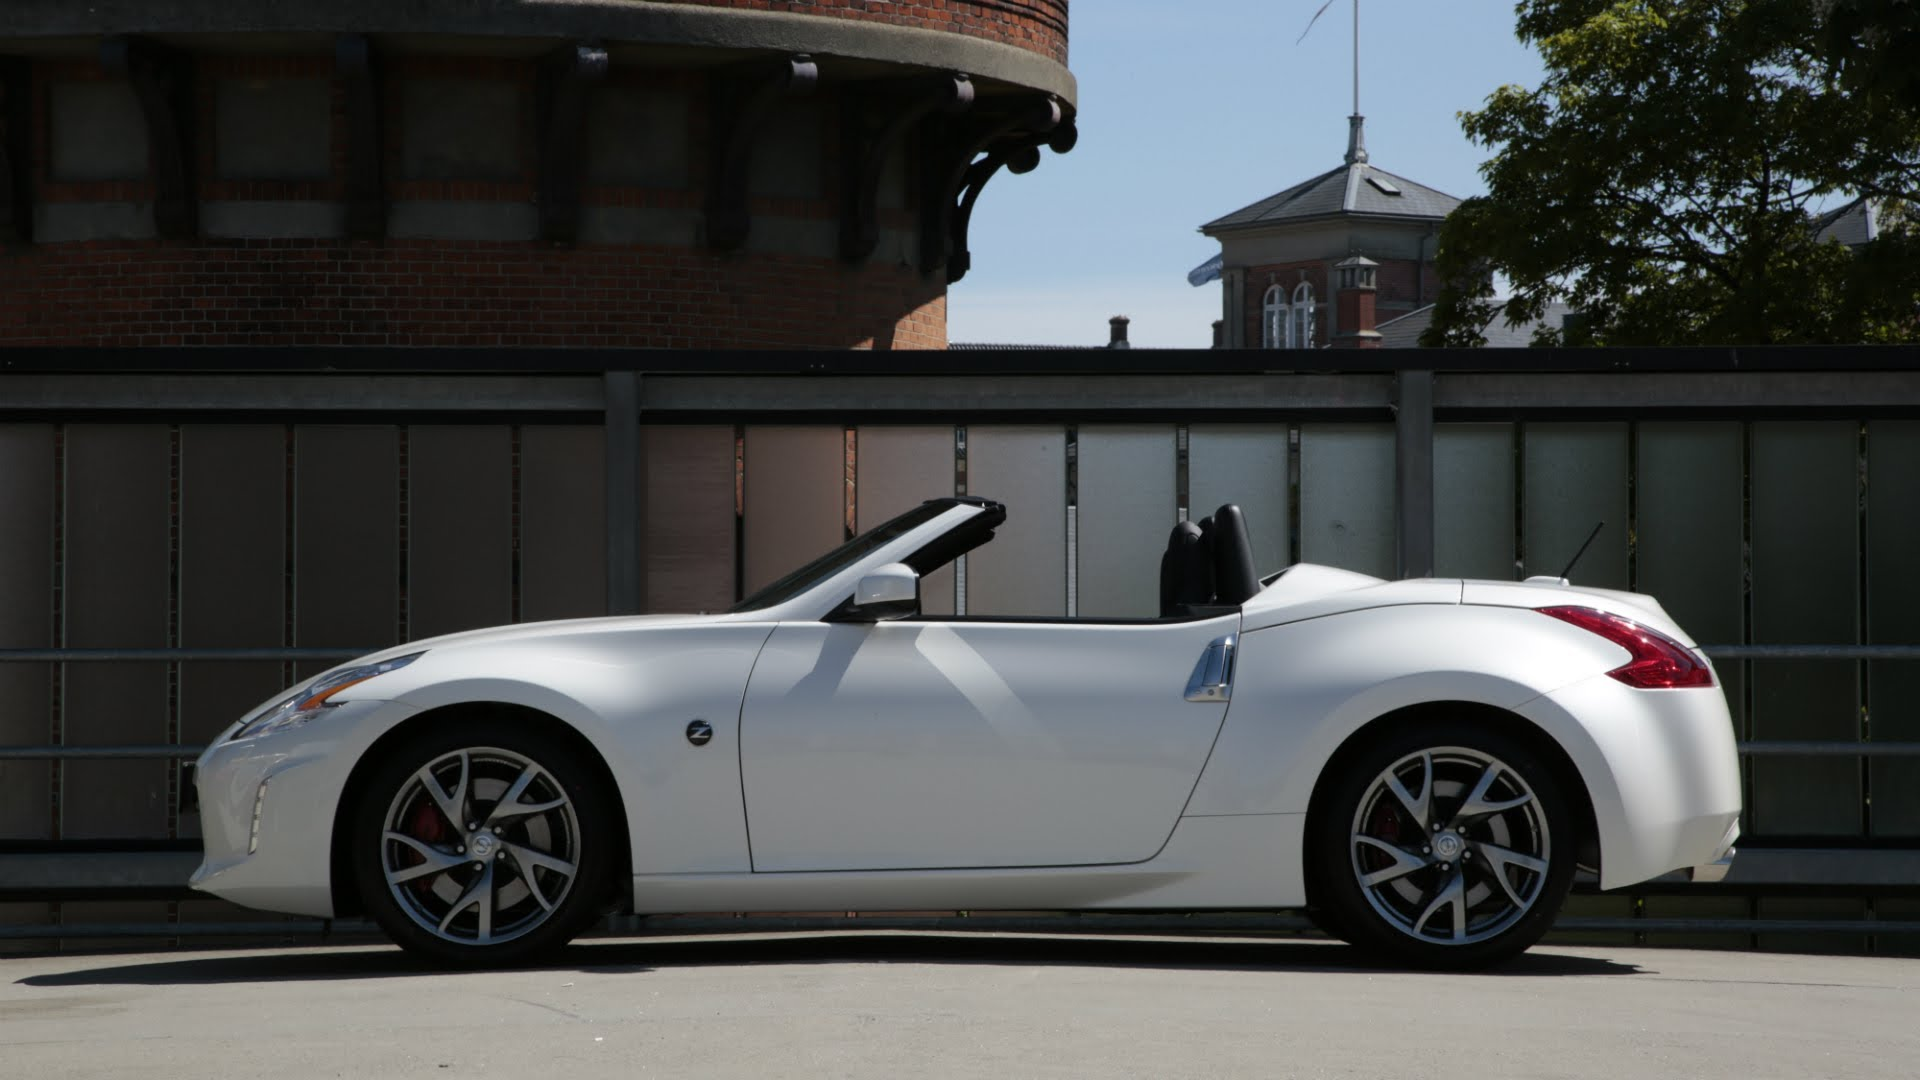 Nissan 370Z Roadster vs Coupe - Black vs White - YouTube